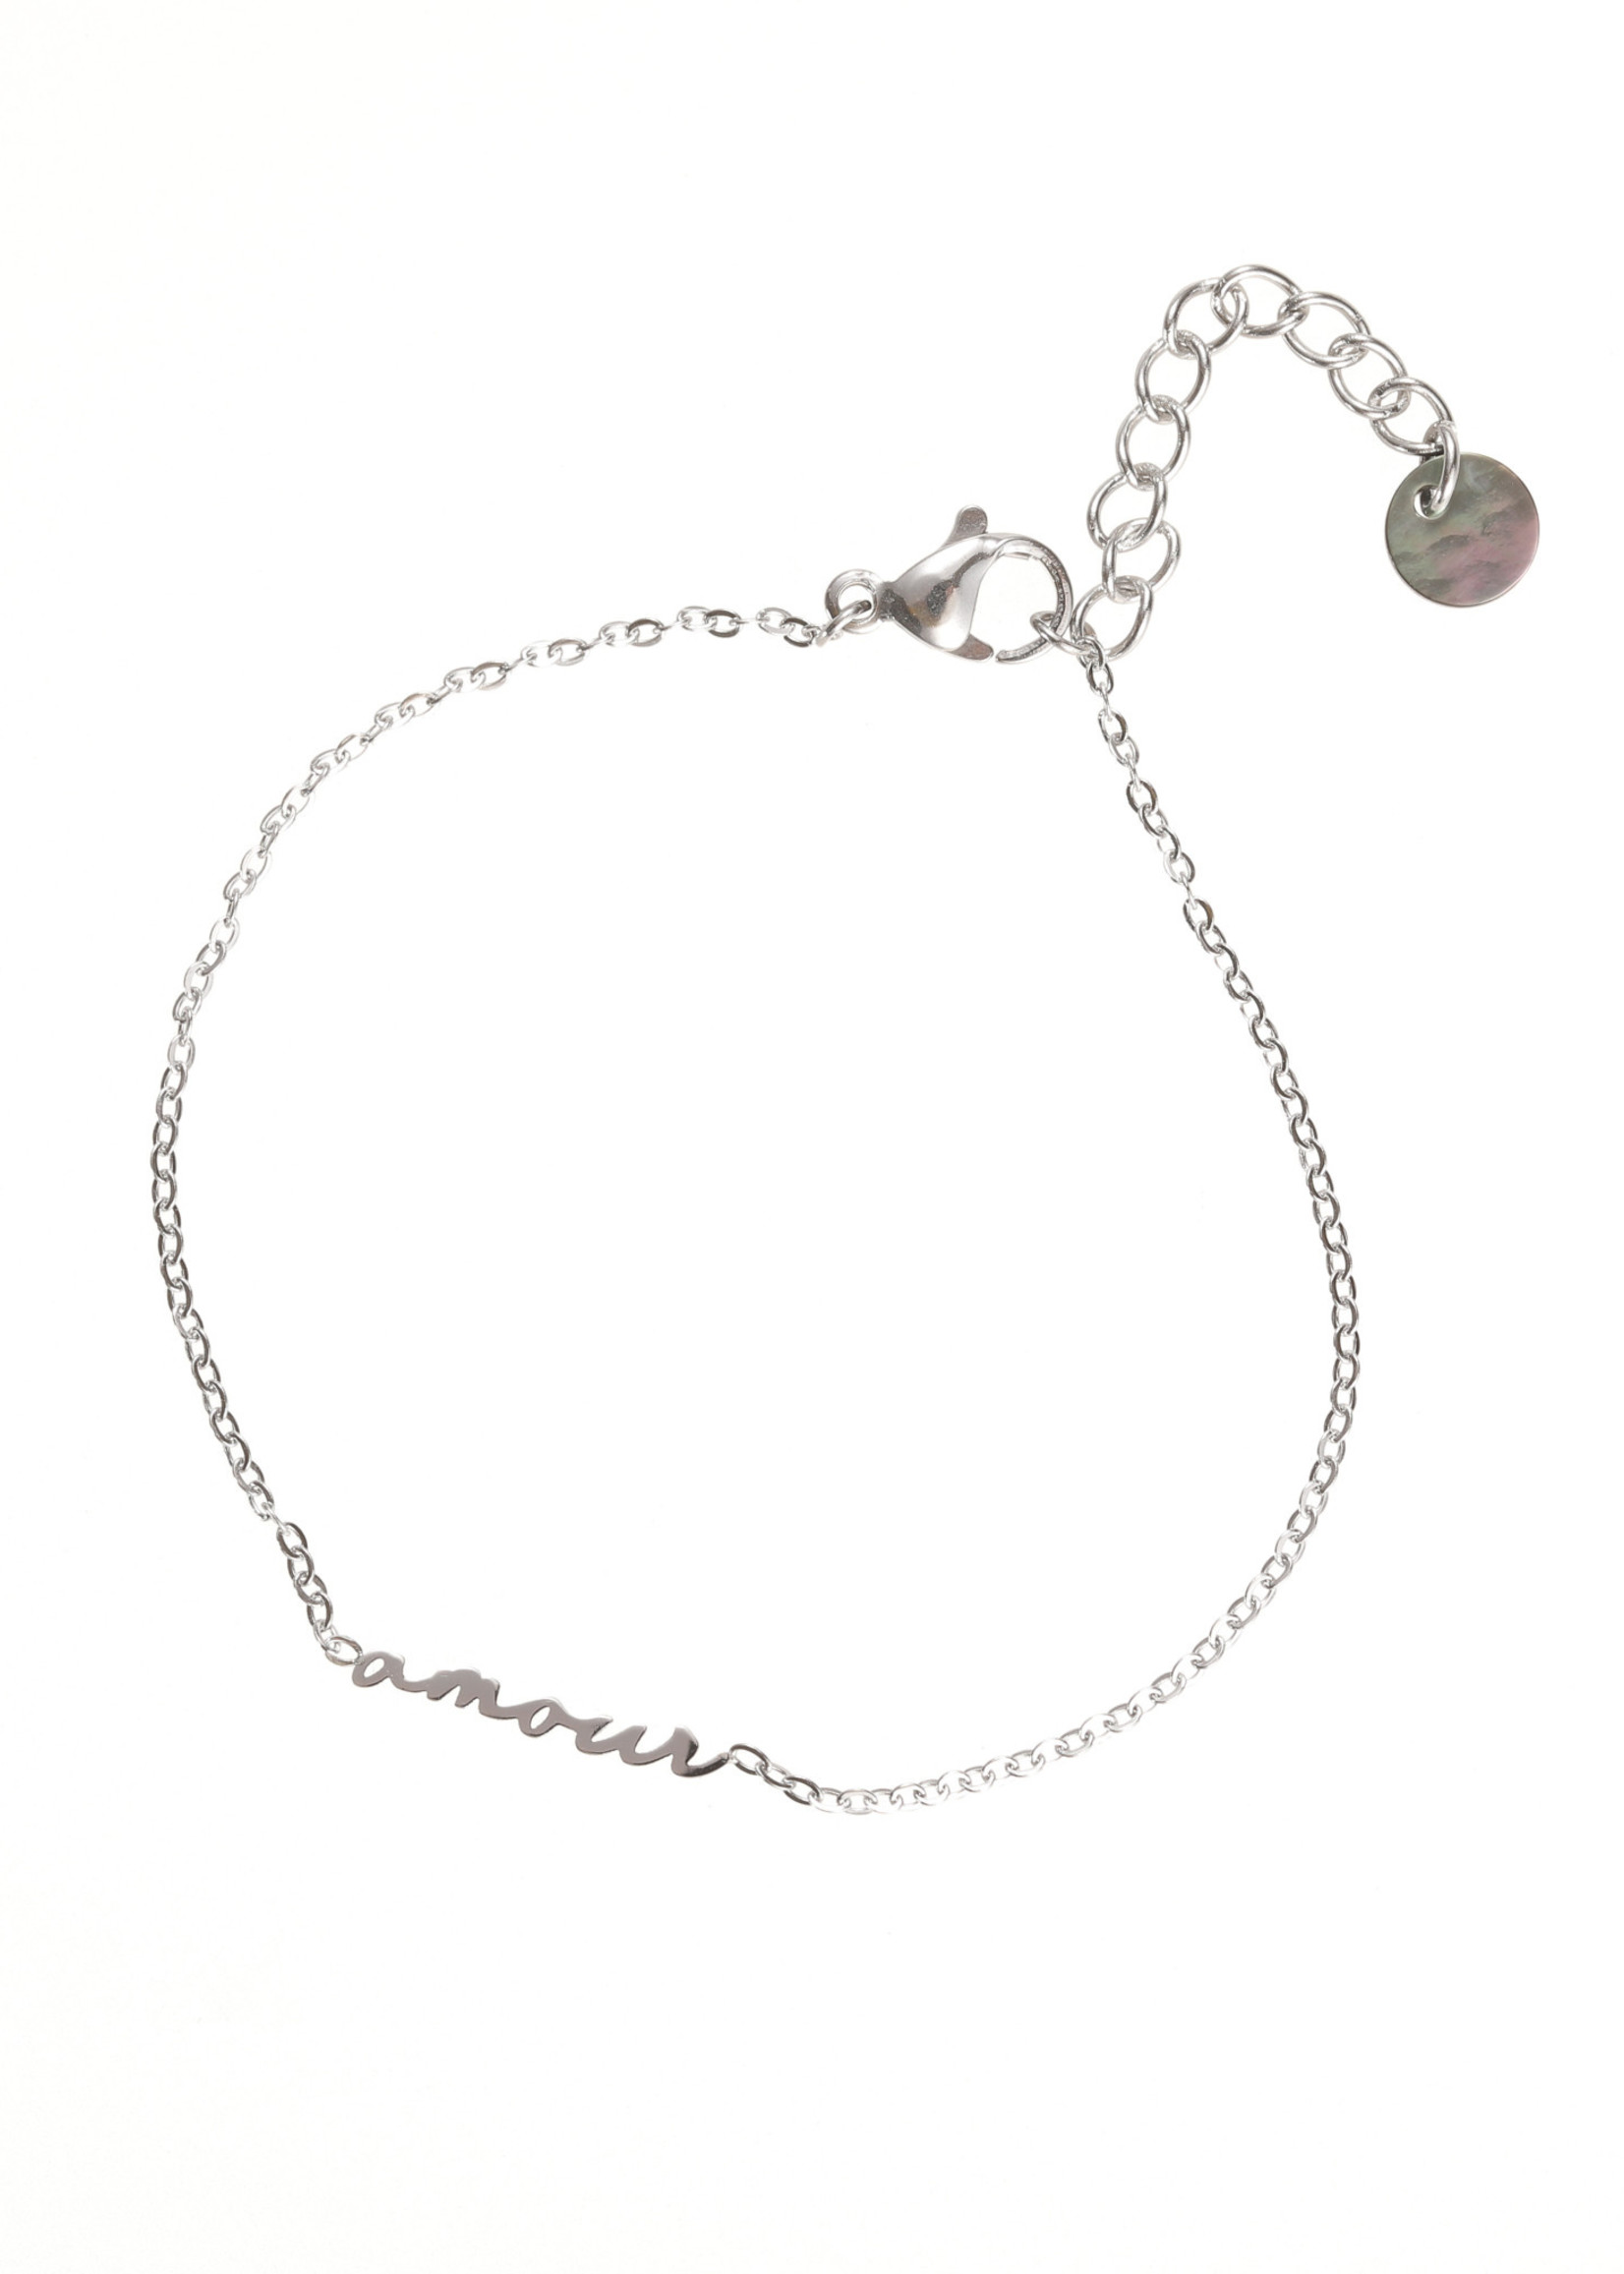 Armband zilver Amour geschreven letters B1734-1